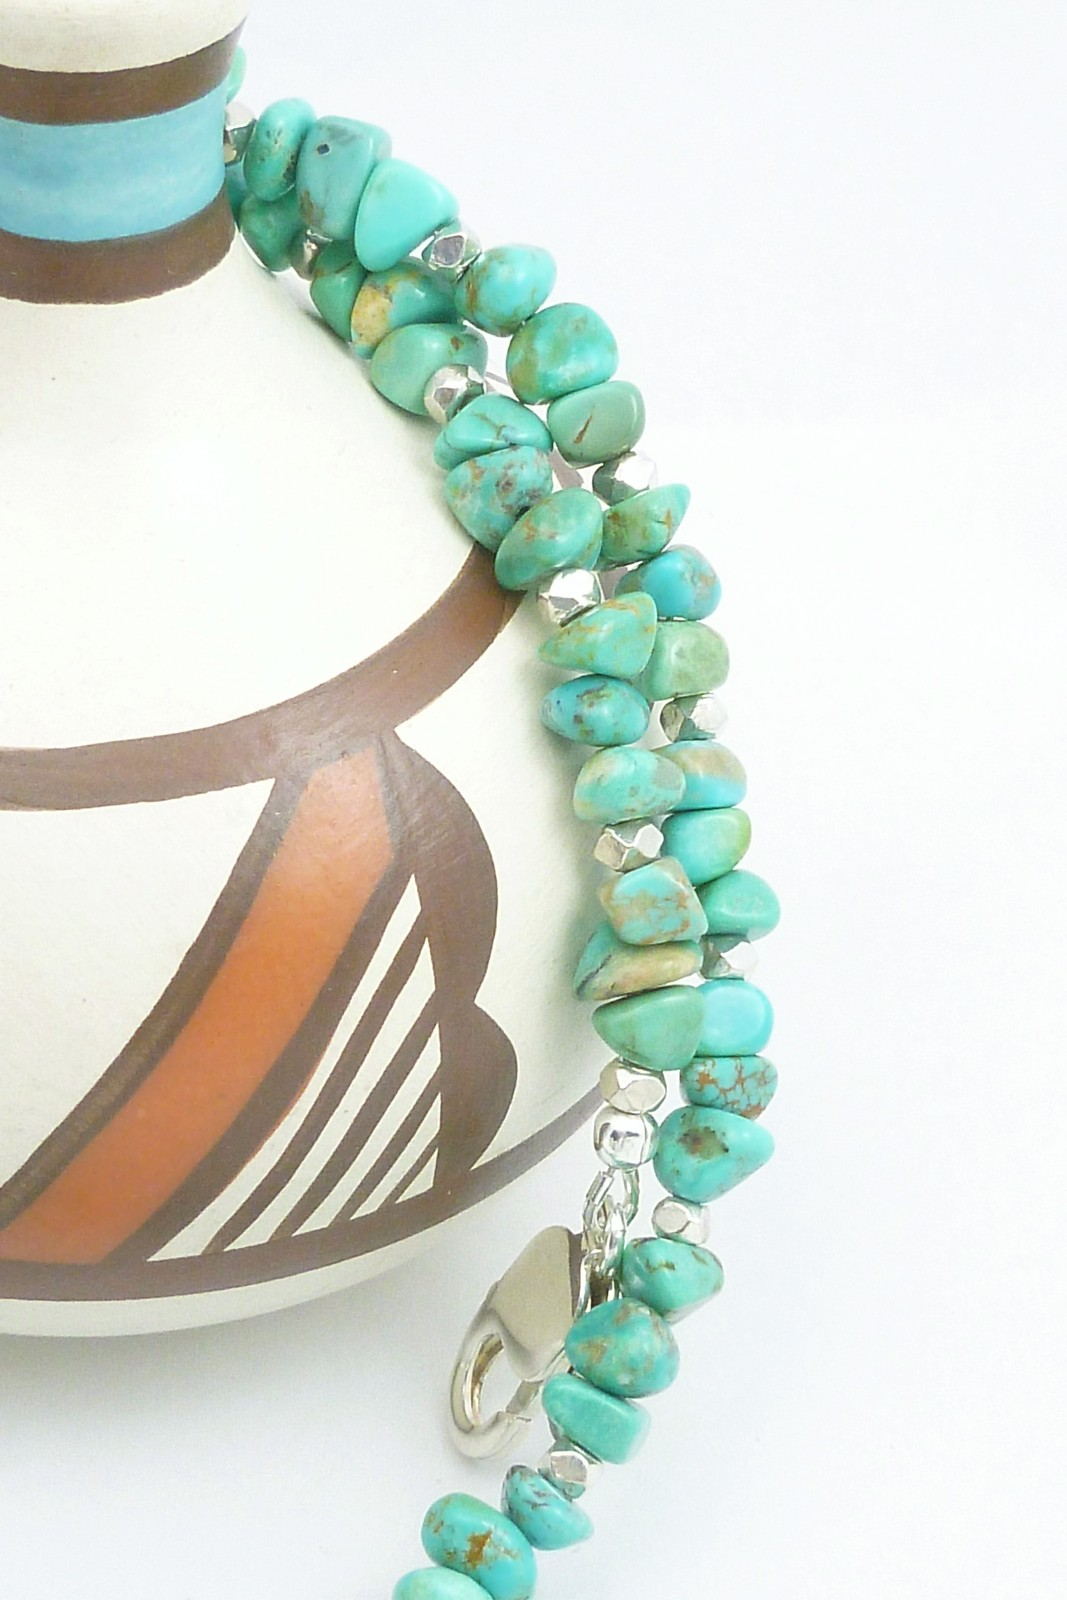 Kingman American Southwest Turquoise Pendant Beaded Sterling Necklace Blue-Green